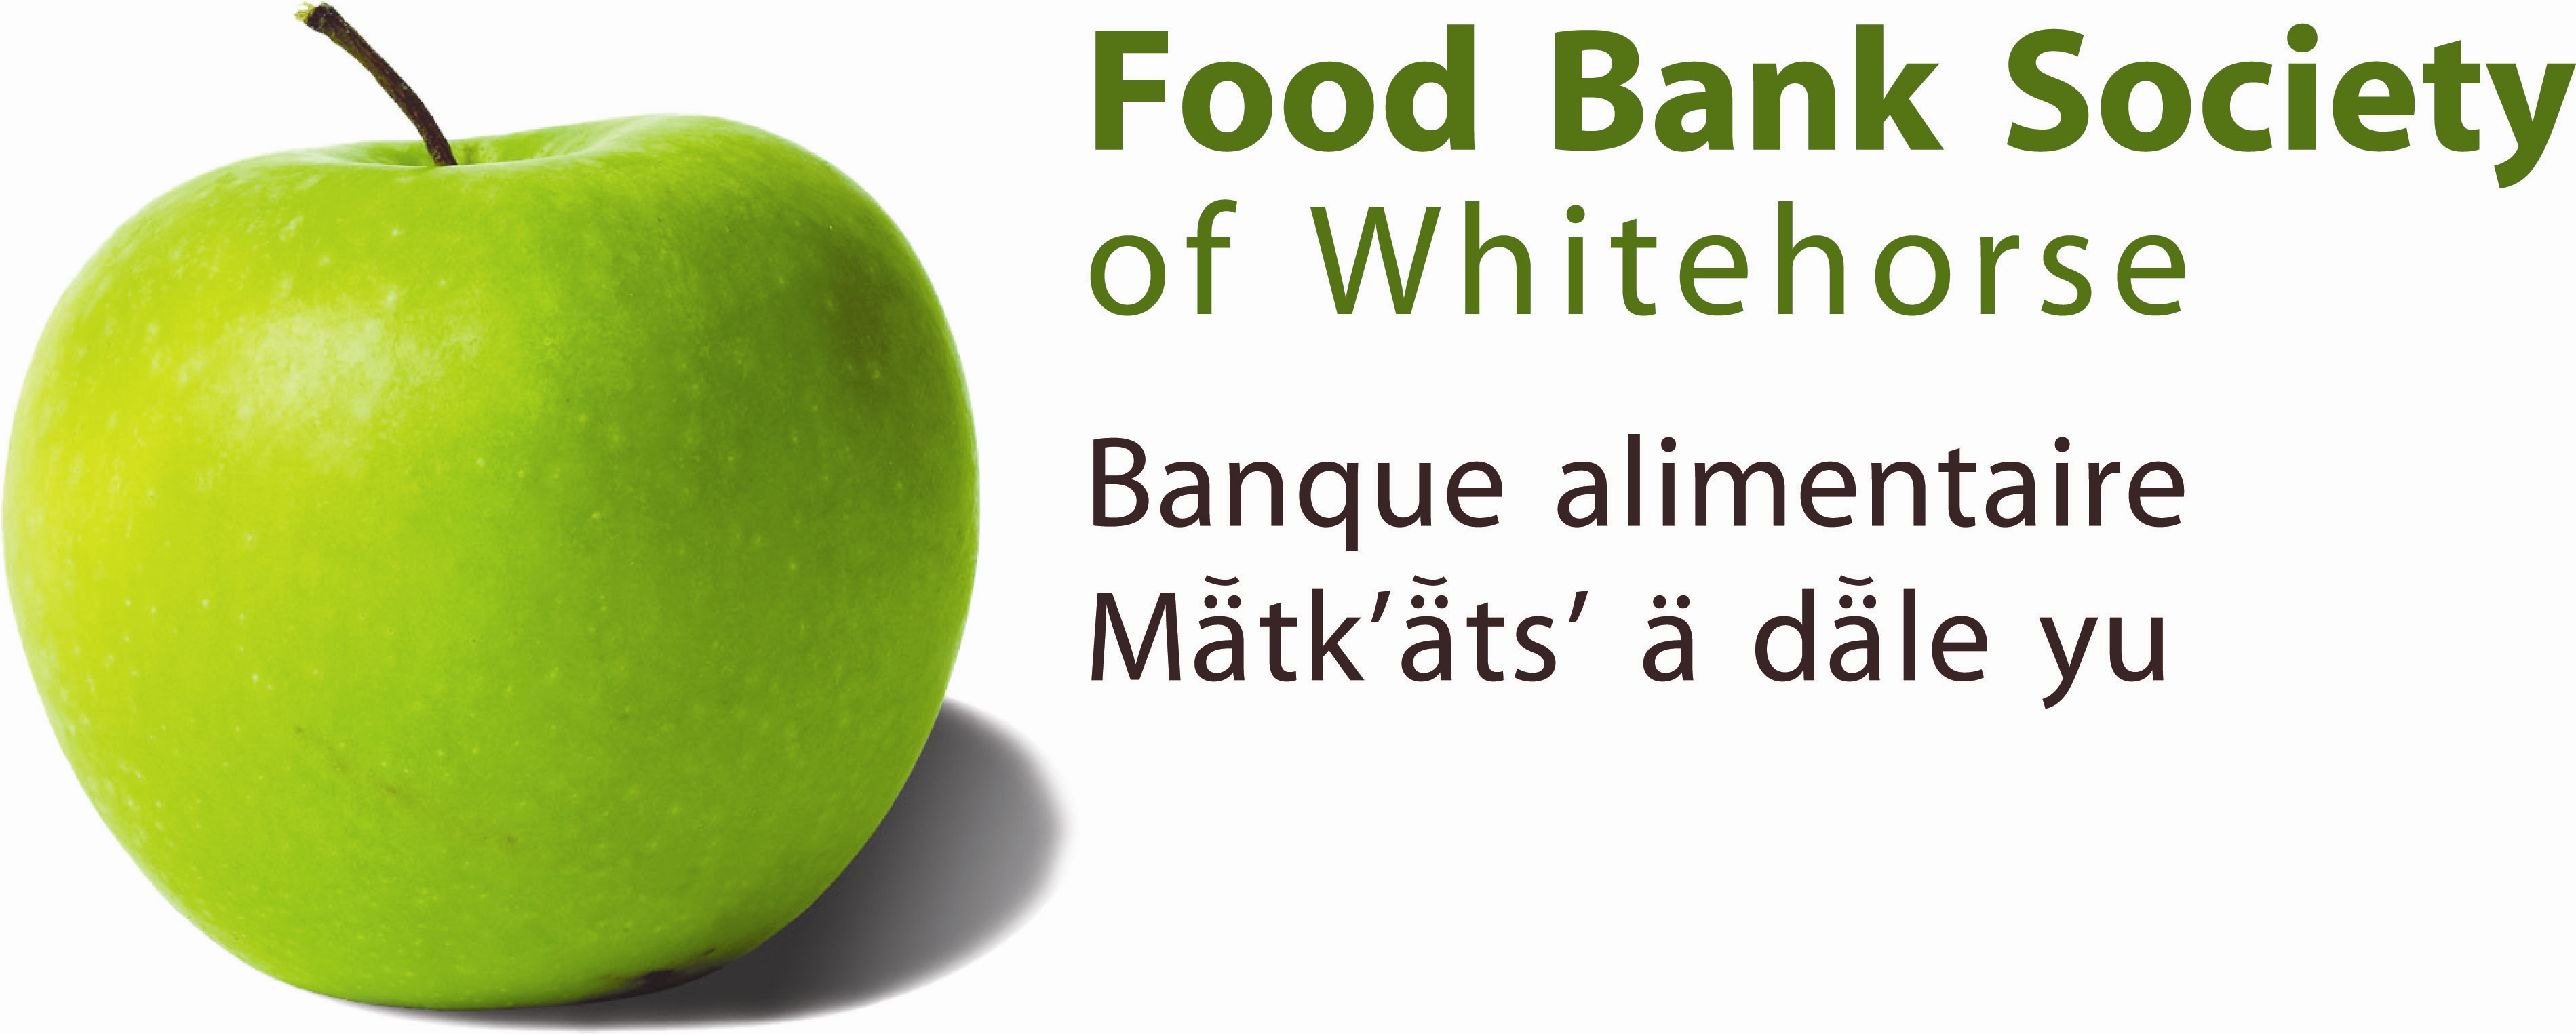 Whitehorse Food Bank